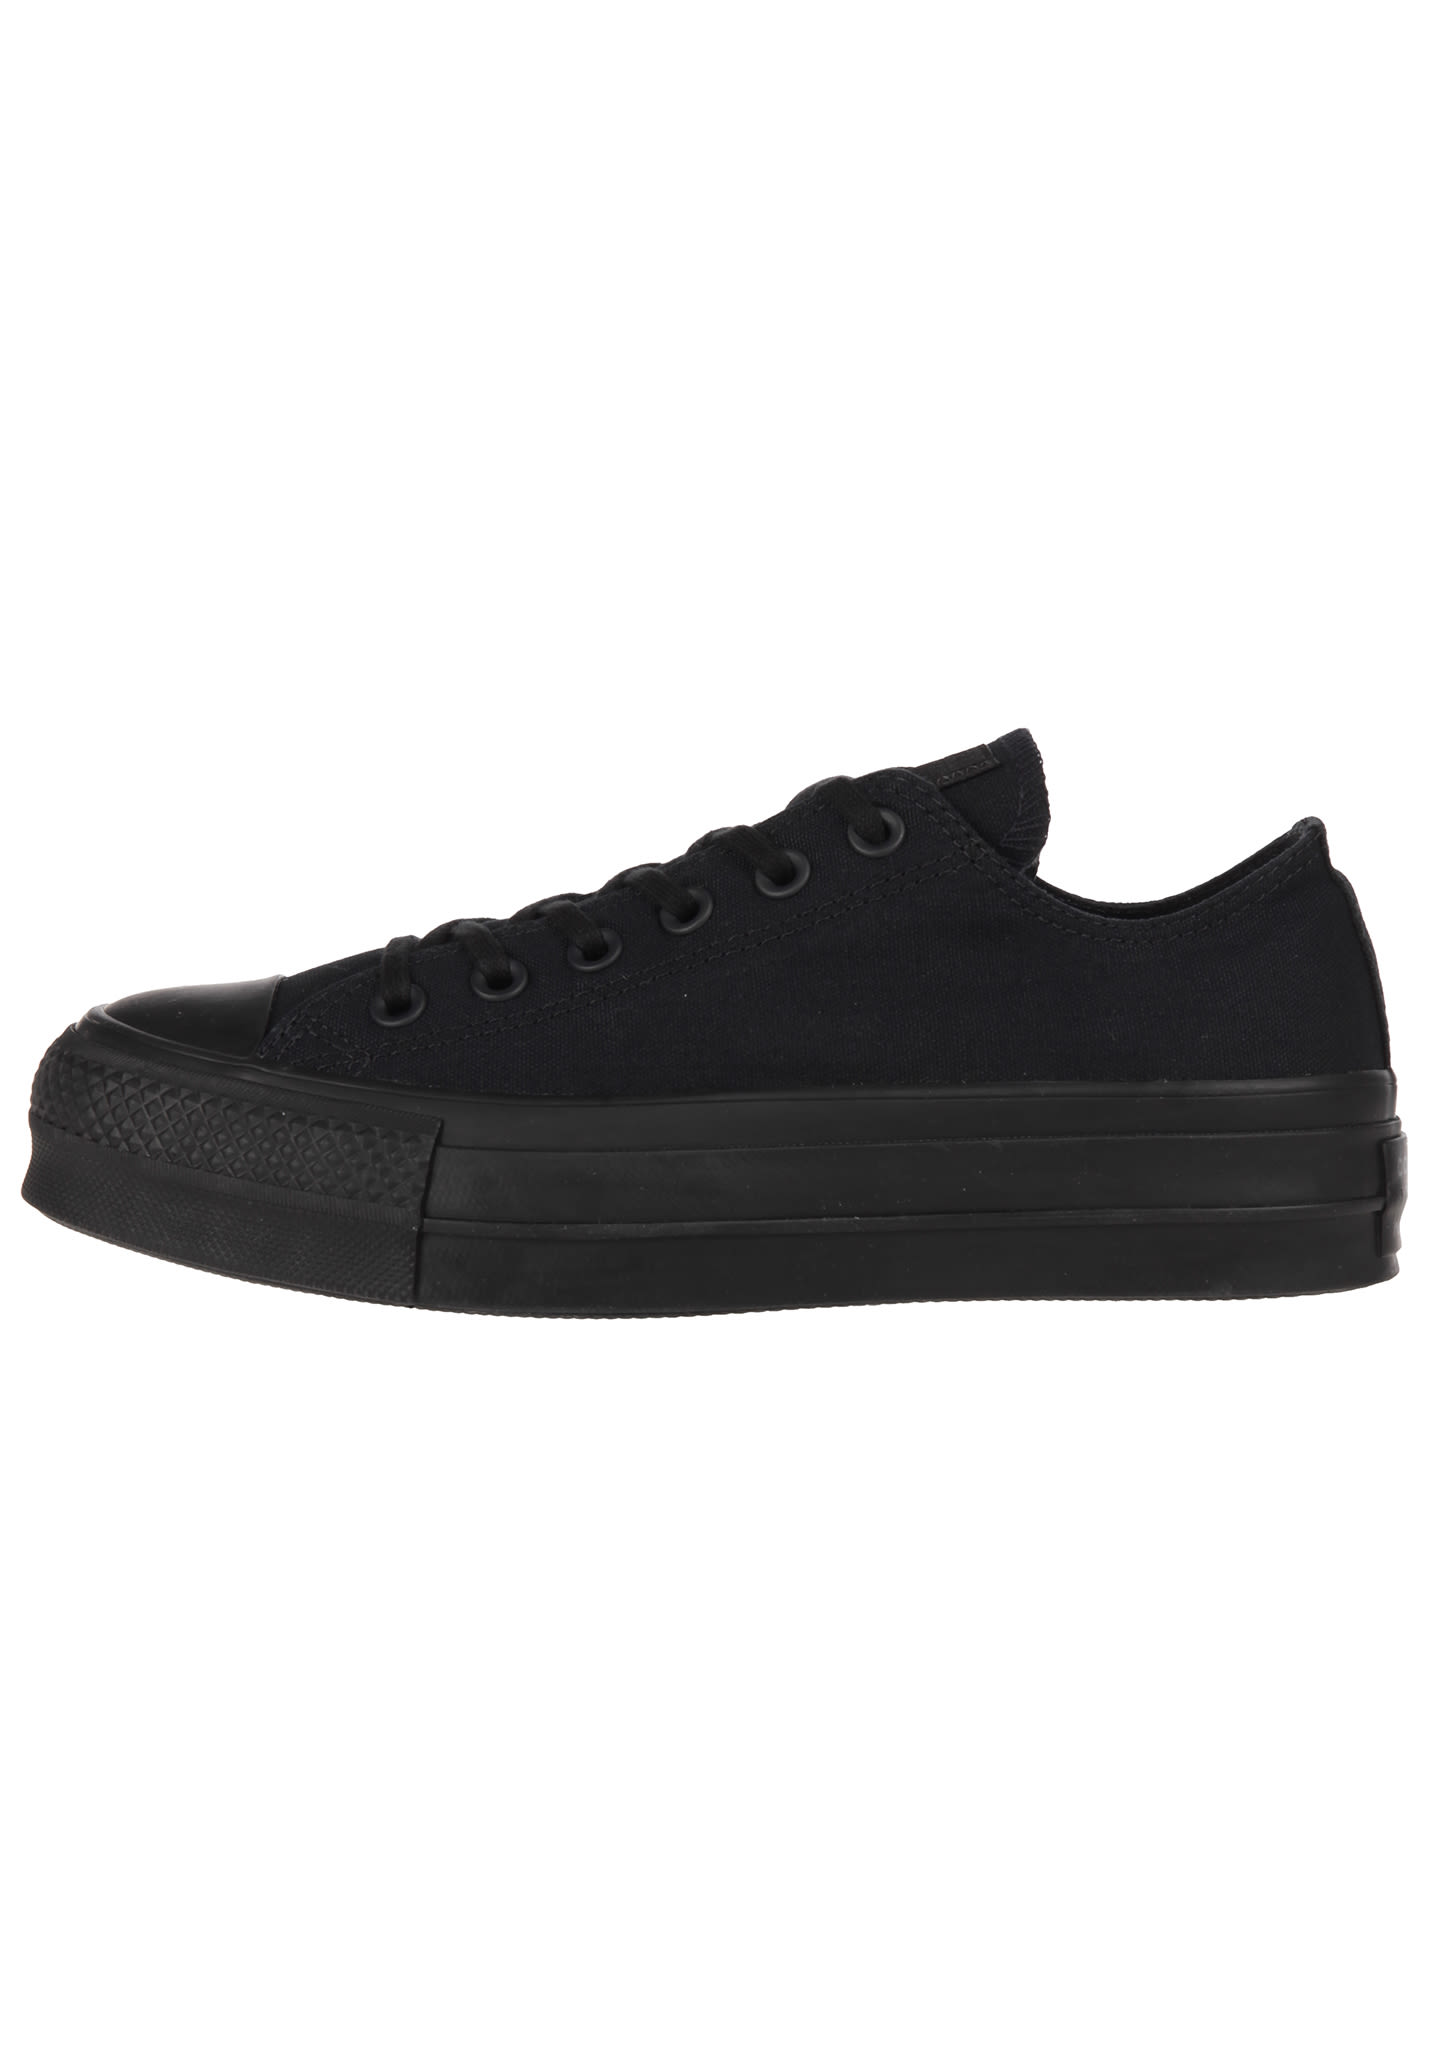 Converse Chuck Taylor All Star Clean Lift Ox - Sneaker für Damen - Schwarz